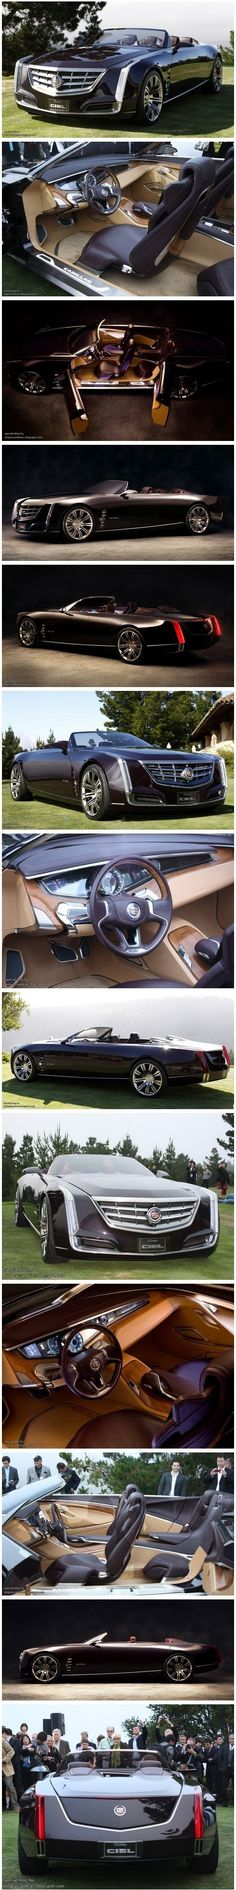 224 best luxury auto images on pinterest supercars fancy cars and cadillac ciel fandeluxe Images